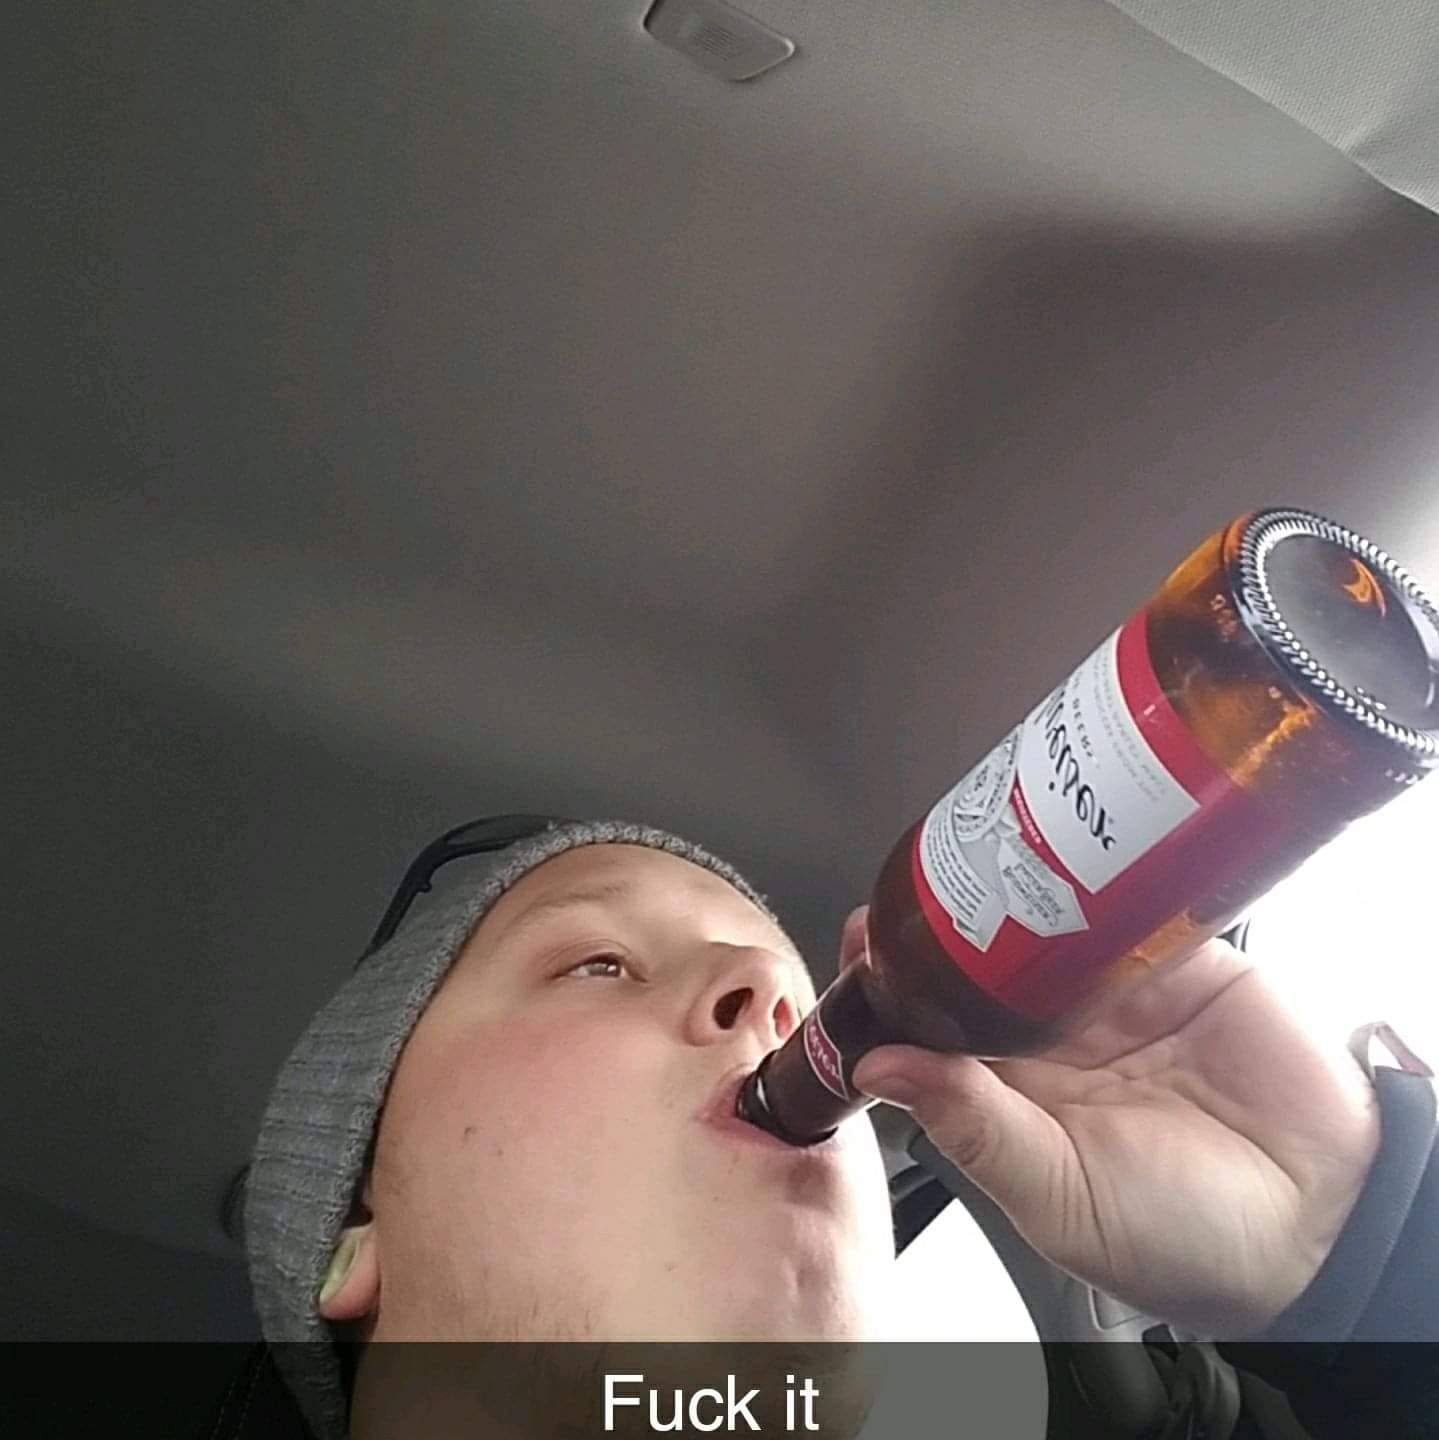 Photo of Keigan Matthew Sumsion apparently drinking a beer while in the driver's seat of his car.